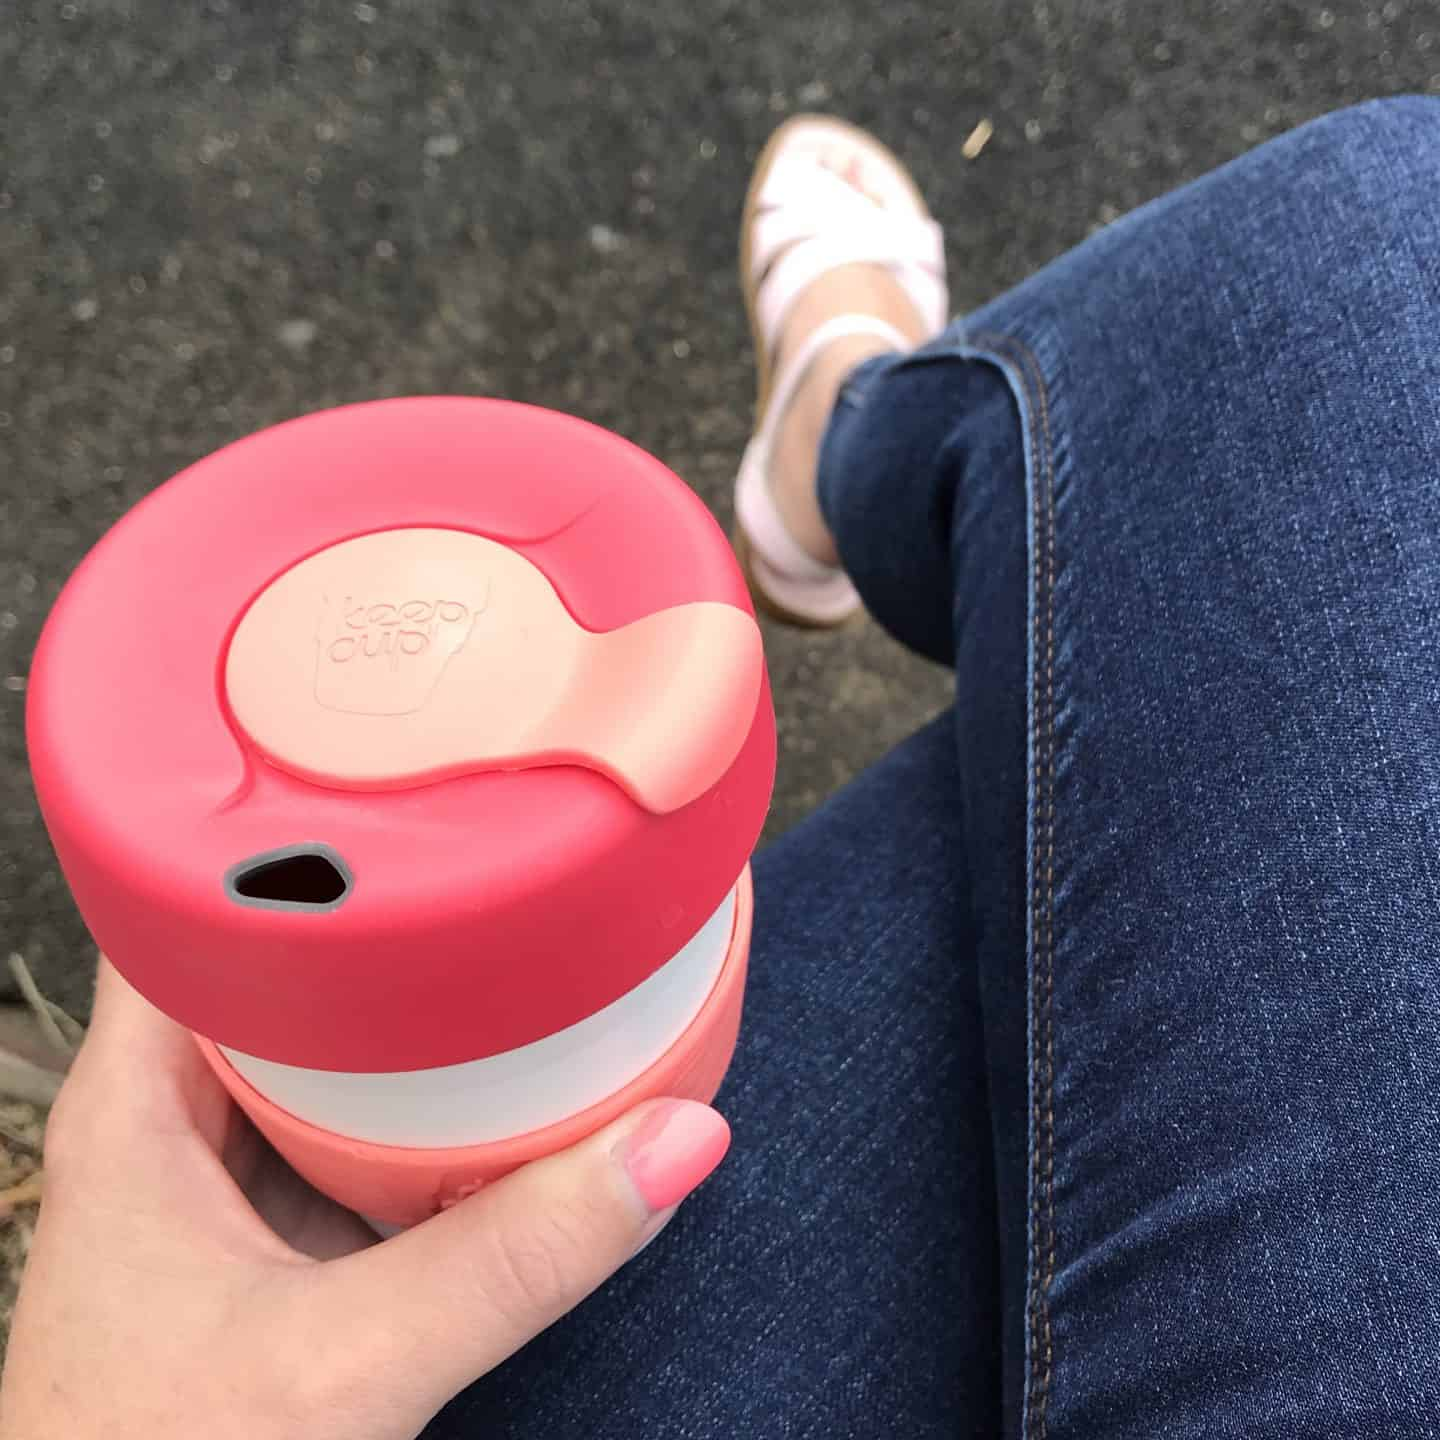 Using a Keep Cup is an easy way to reduce waste